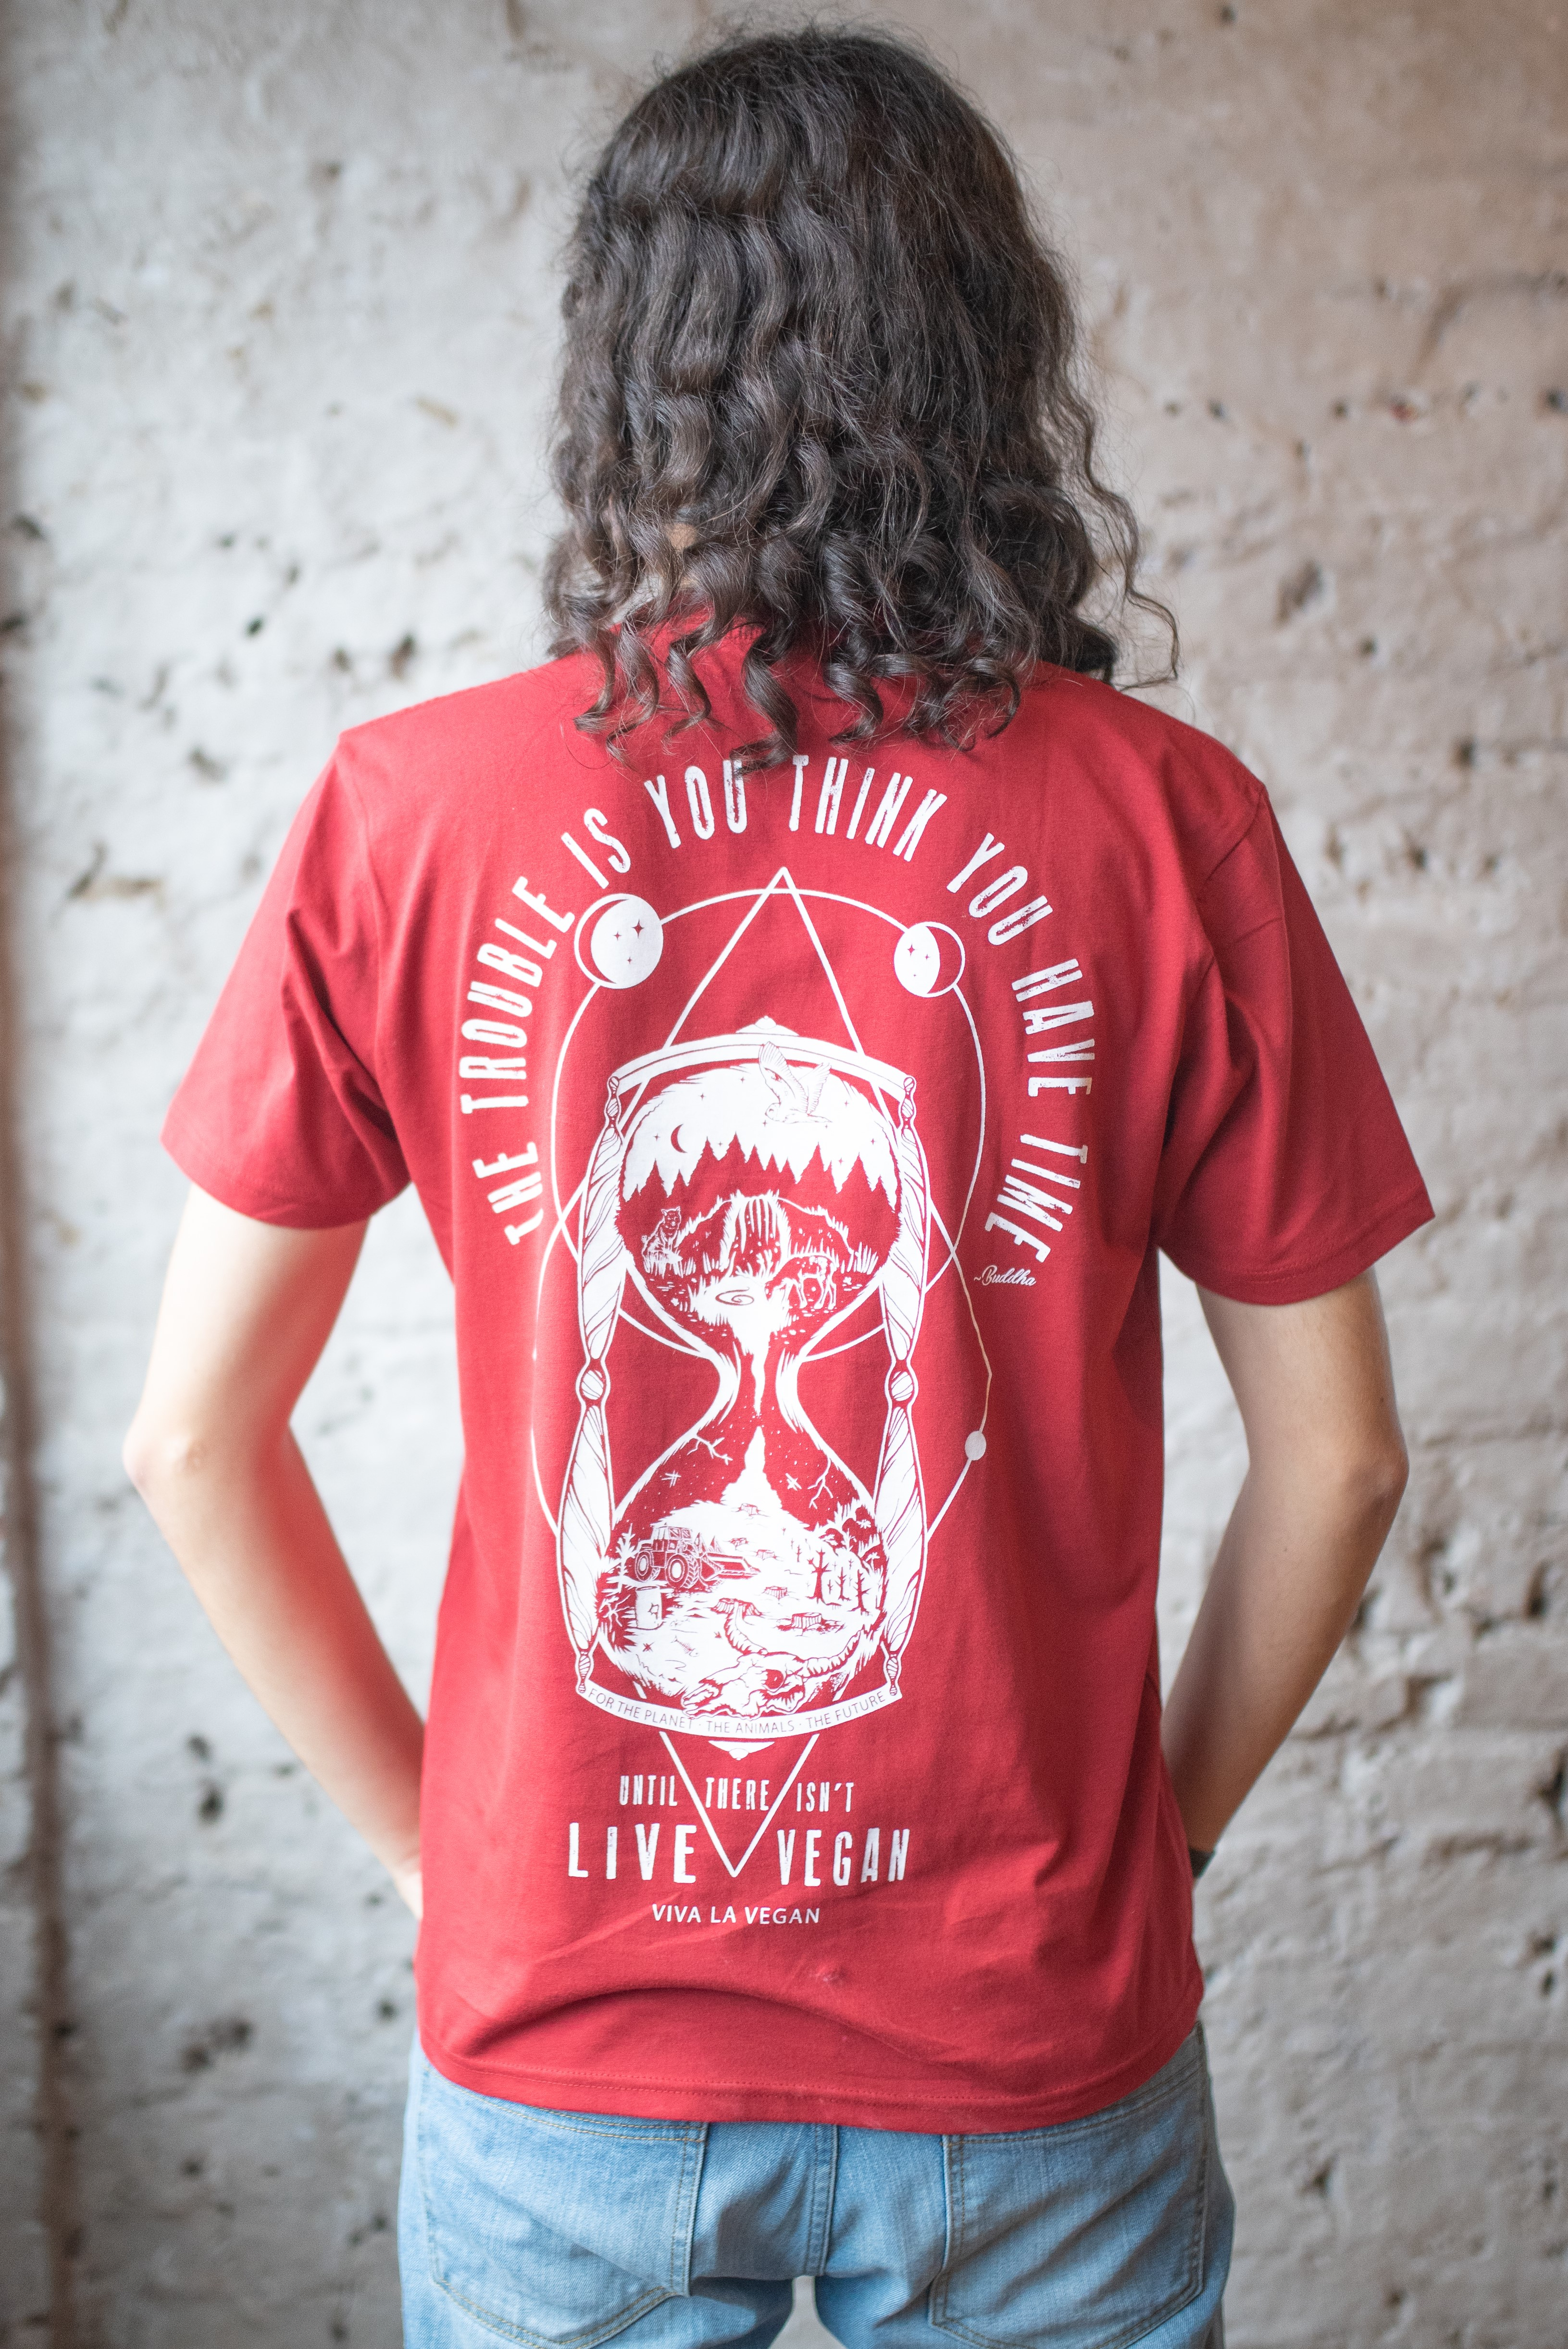 Rear print view of Model wearing The Time is Now Vegan Statement Tshirt